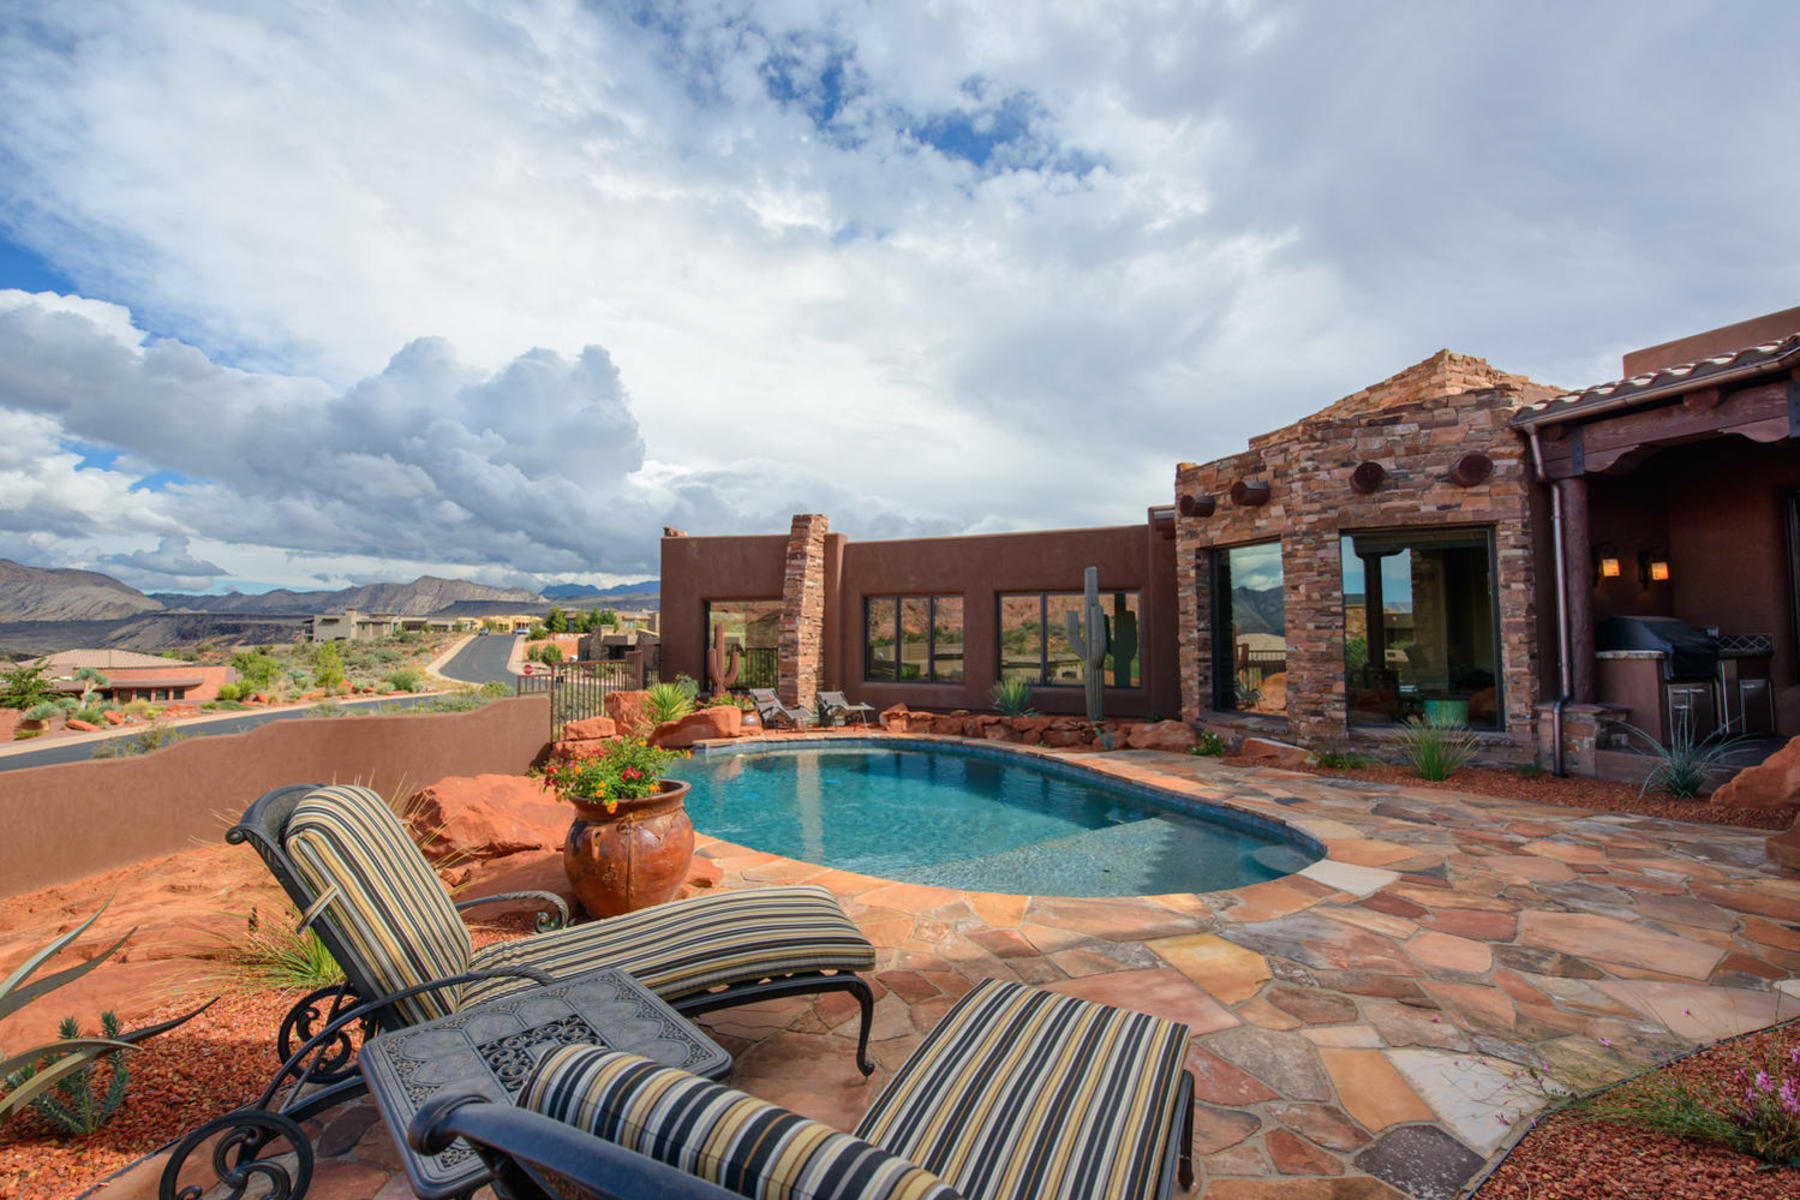 Casa Unifamiliar por un Venta en Feel the Mountains Experience the Desert 4956 Long Sky Circle St. George, Utah 84770 Estados Unidos